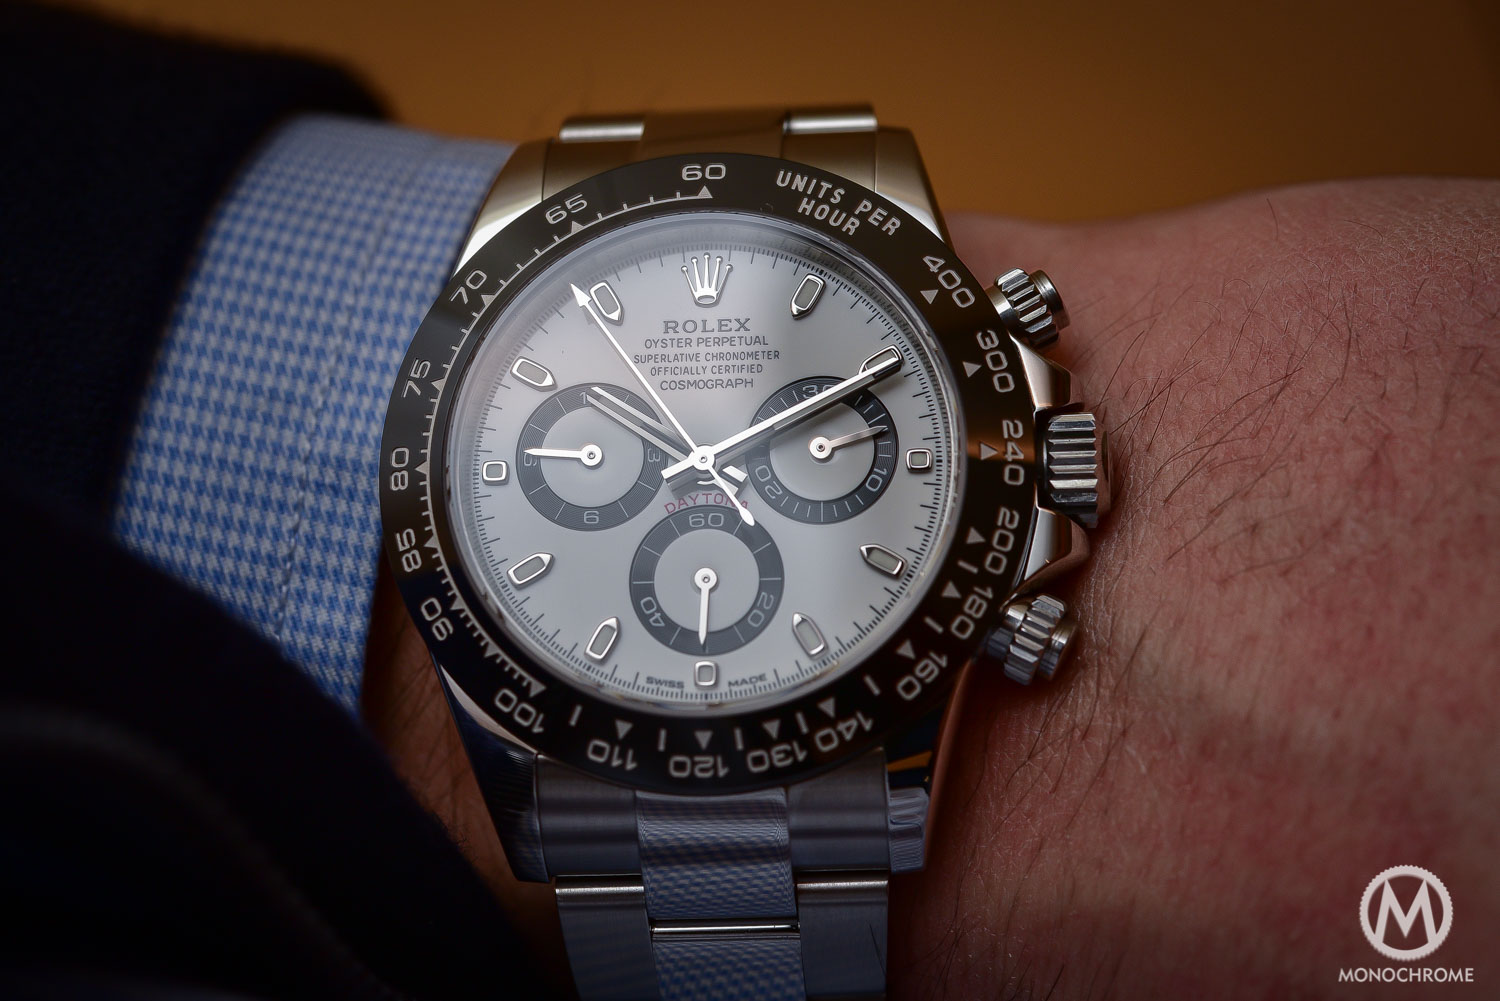 Rolex Daytona 116500LN in steel Cerachrom ceramic black bezel - 2